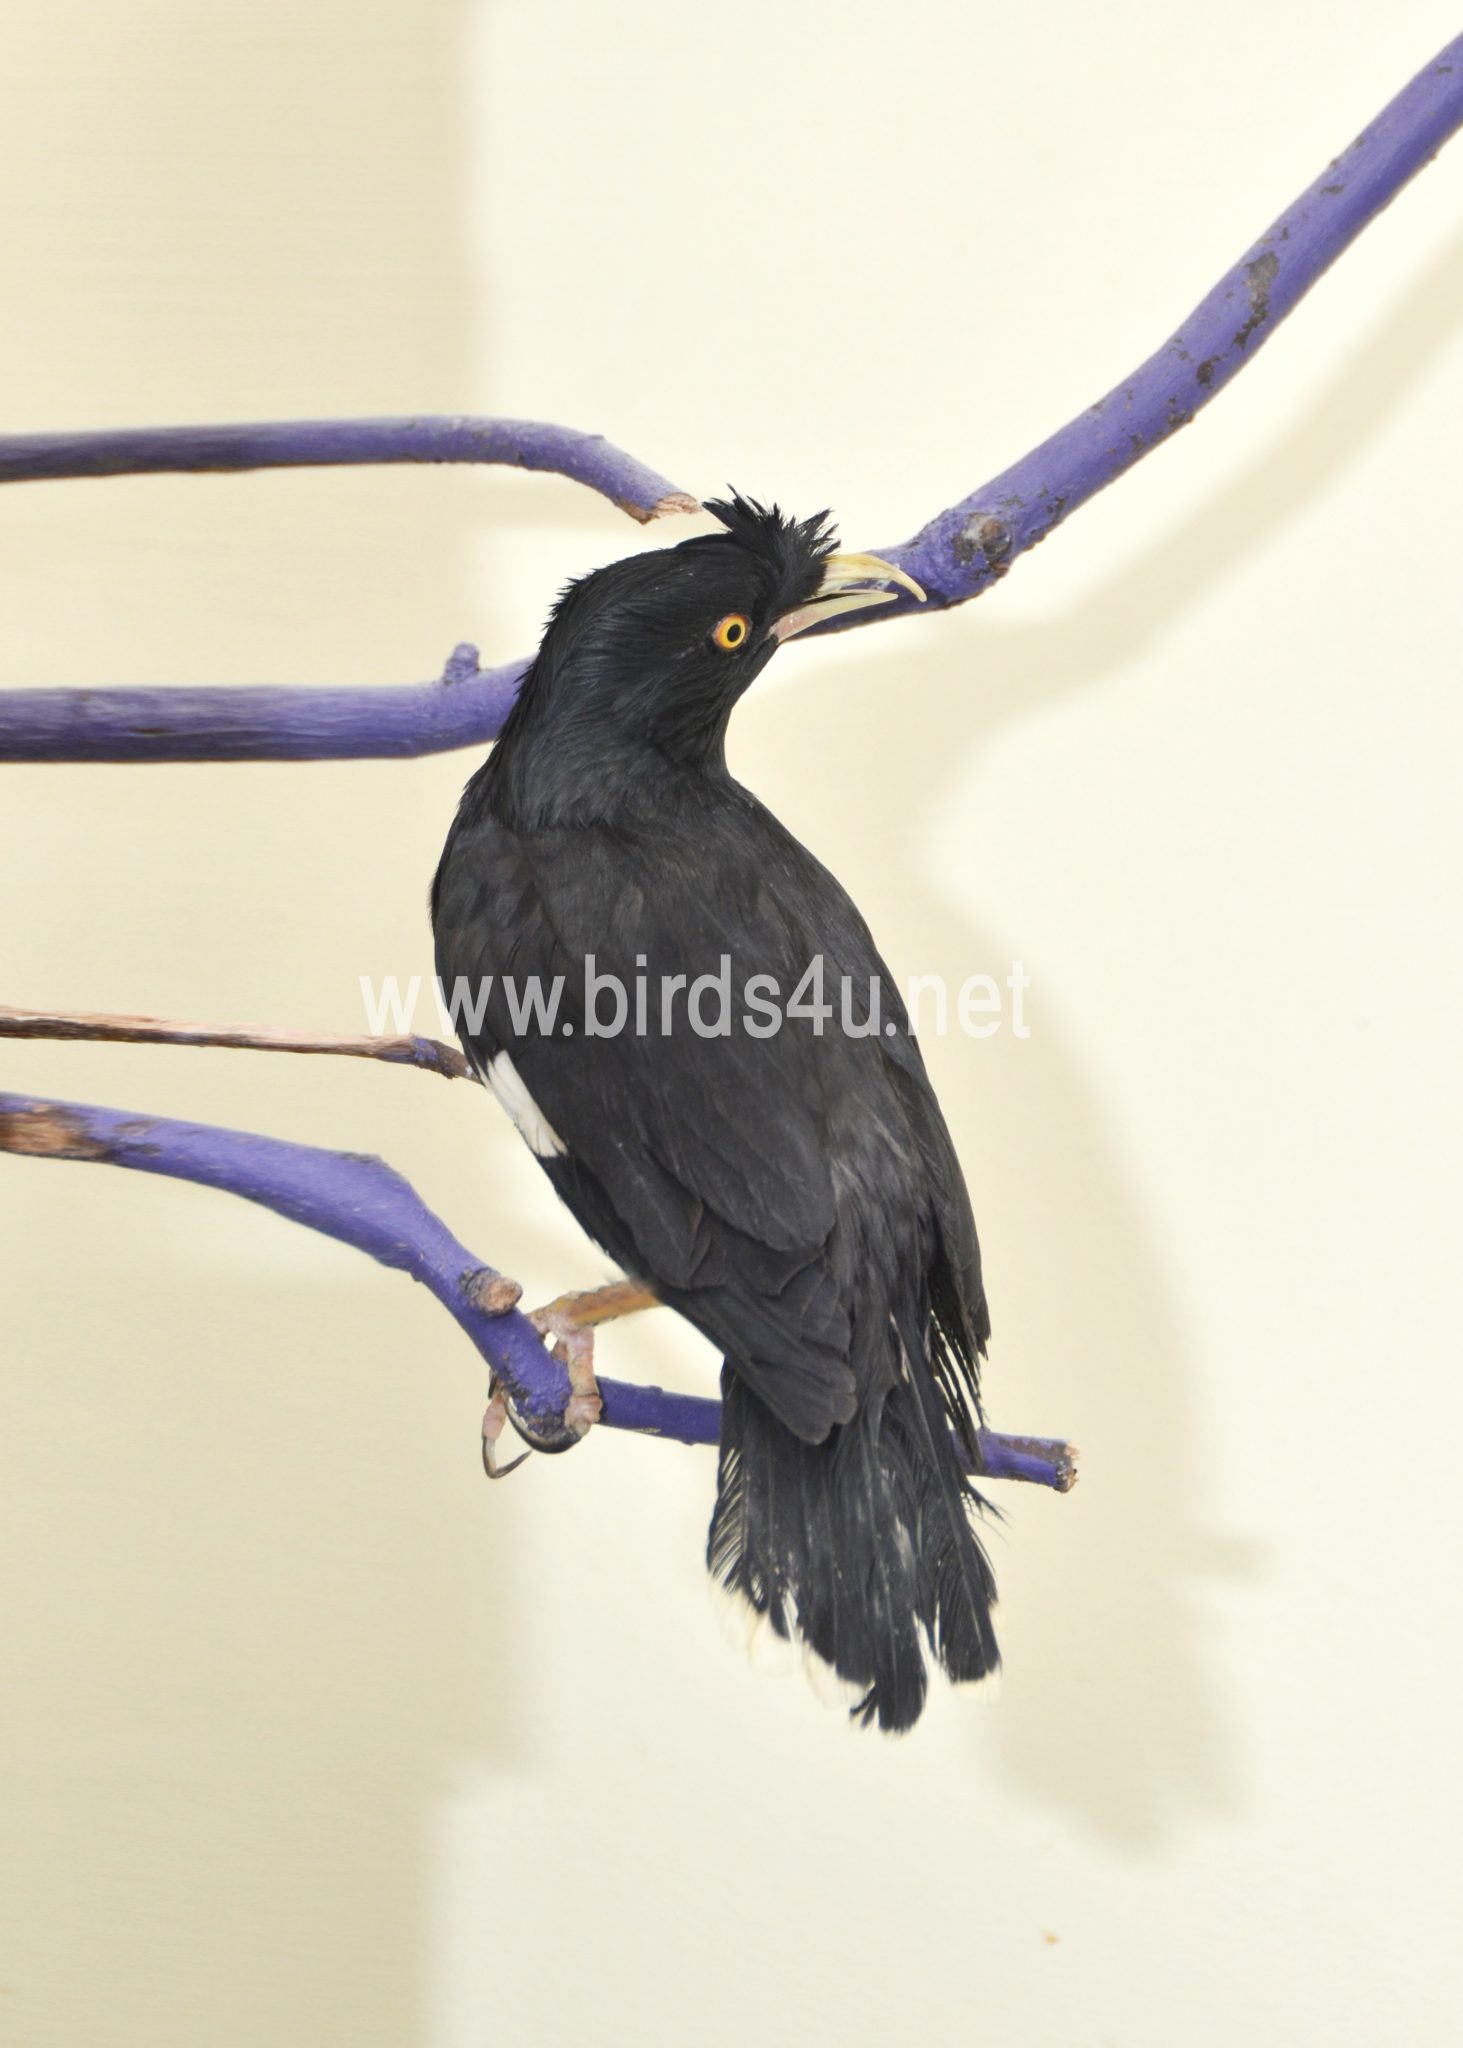 Mynah Bird - photo#49